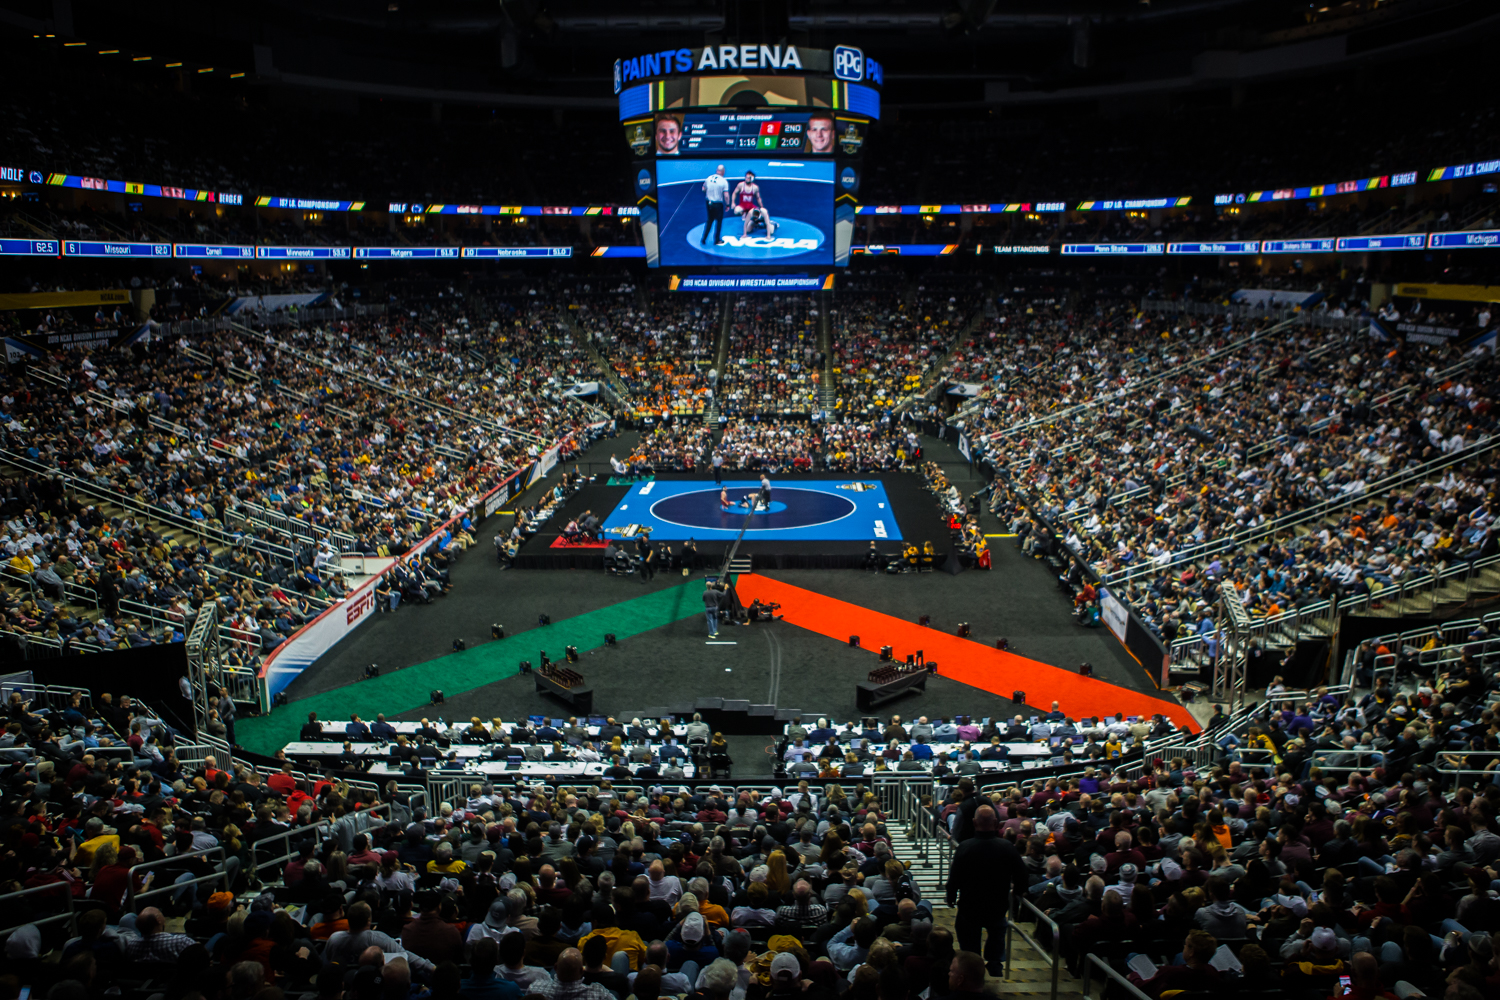 Penn+State%27s+157-pound+Jason+Nolf+wrestles+Nebraska%27s+Tyler+Berger+during+the+final+session+of+the+2019+NCAA+D1+Wrestling+Championships+at+PPG+Paints+Arena+in+Pittsburgh%2C+PA+on+Saturday%2C+March+23%2C+2019.+Nolf+won+by+major+decision%2C+10-2%2C+and+earned+first-place+in+the+weight+class.